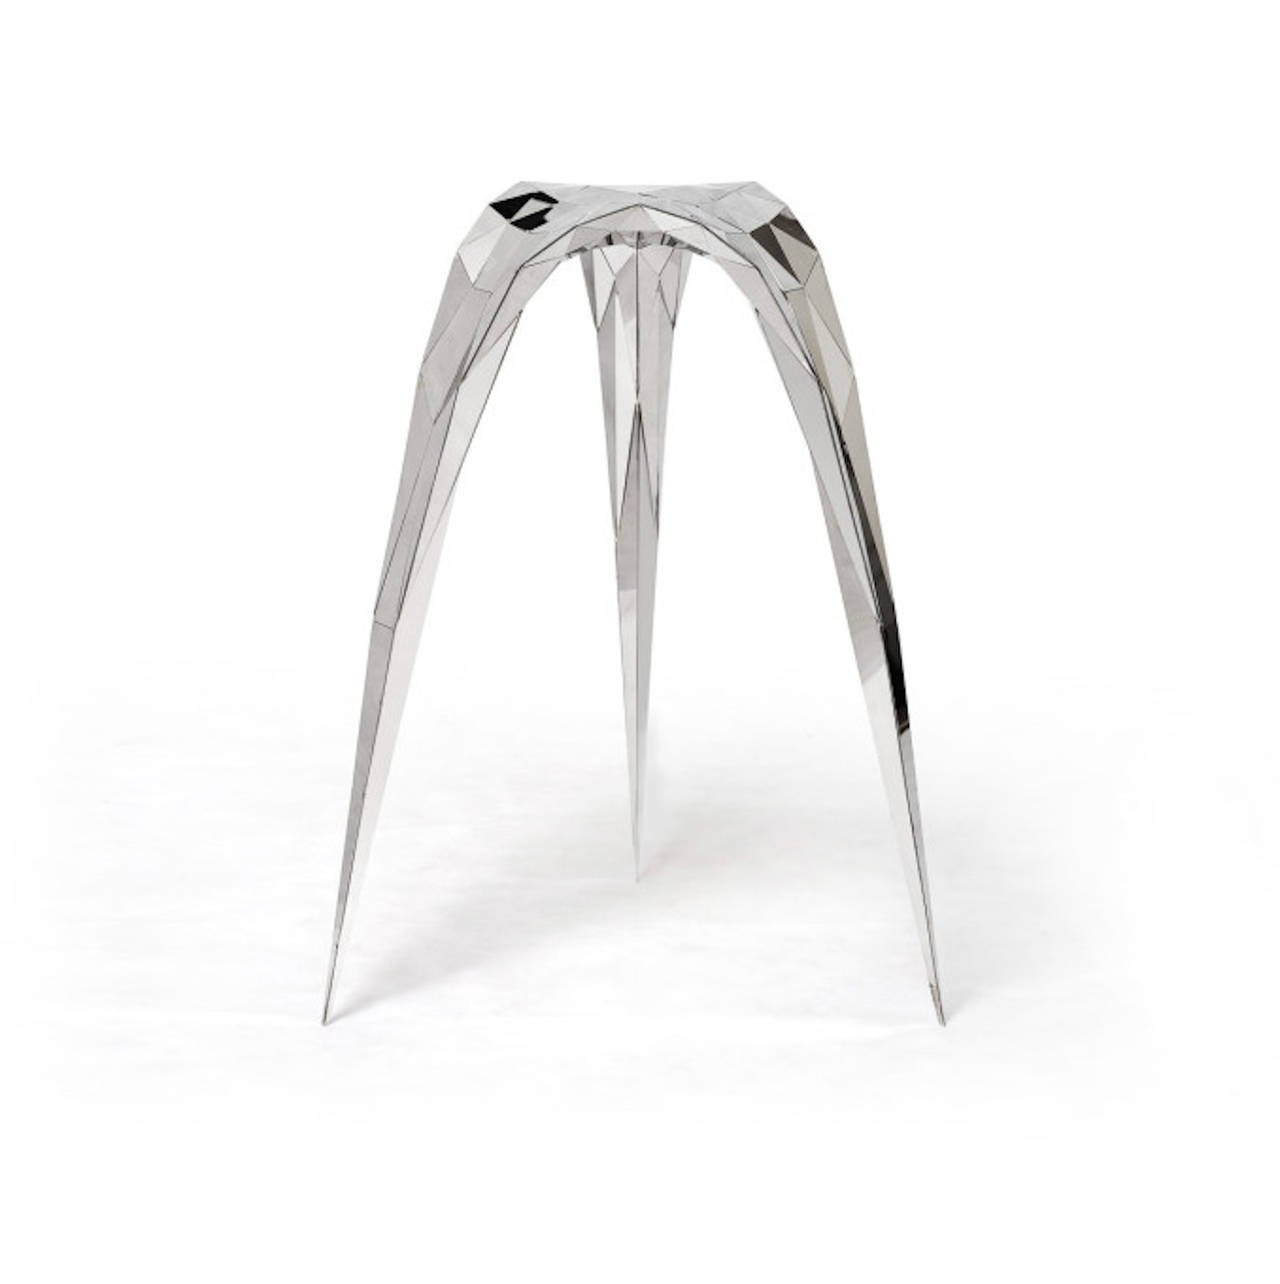 Chinese Polished Stainless Steel Triangle Stool/Side Chair By Zhoujie Zhang  For Sale